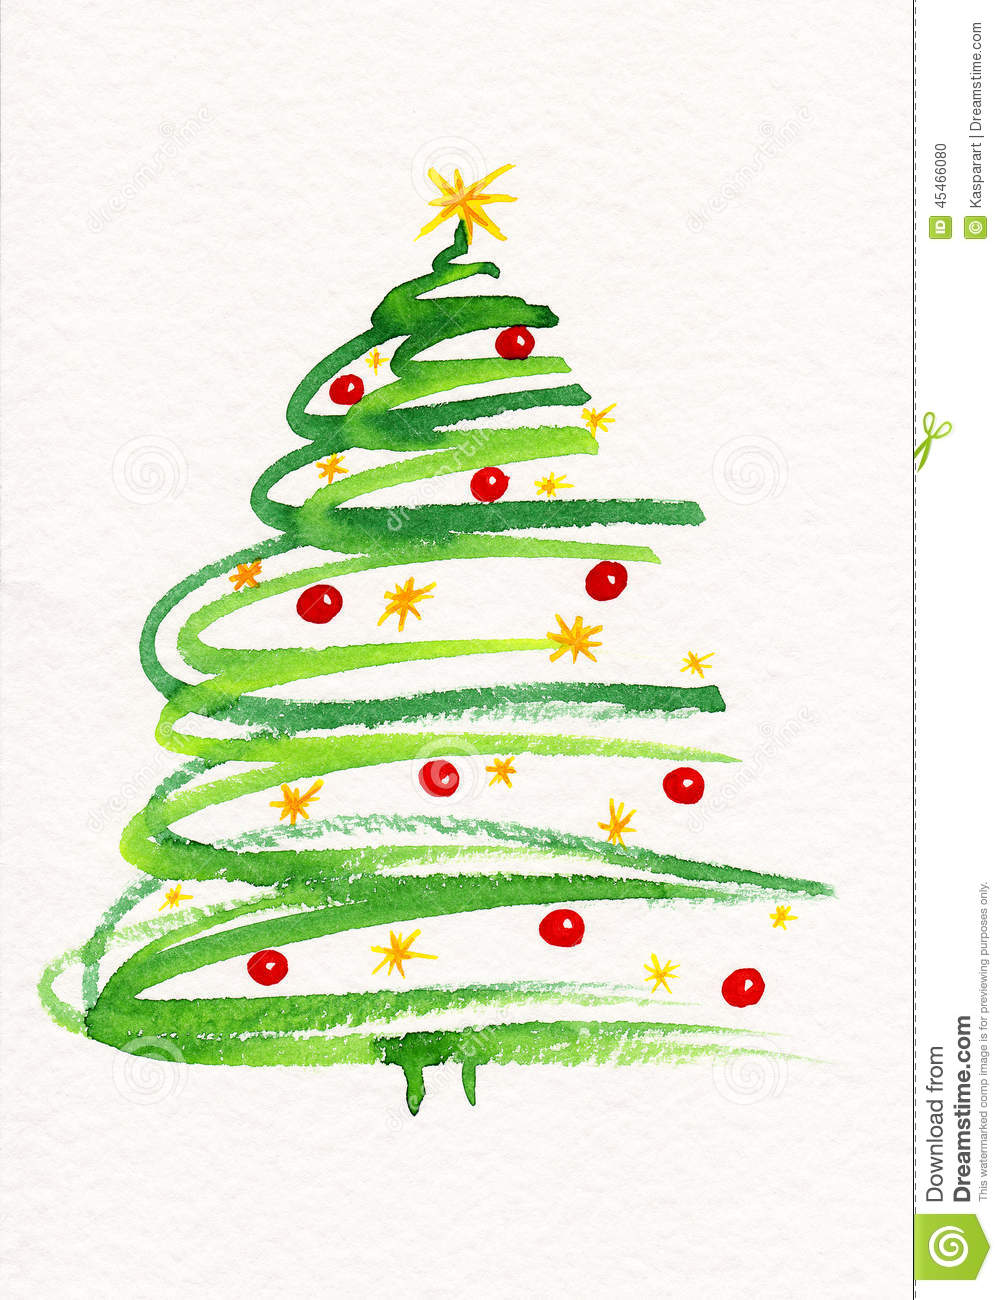 Decorated Christmas Tree Painting Stock Illustration - Image: 45466080